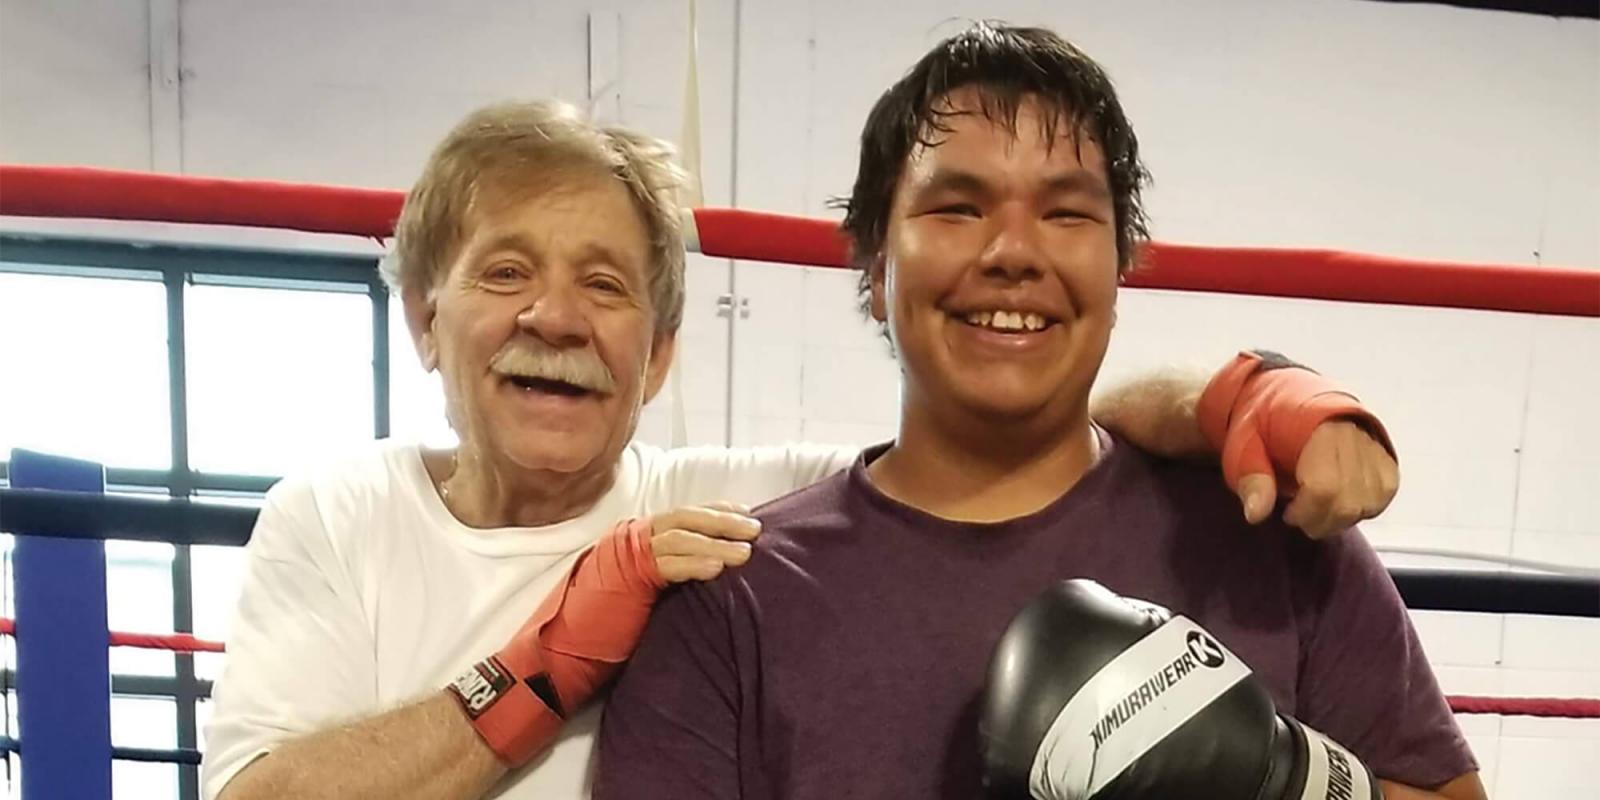 Rod has coached boxing for many years and he plans to continue as long as his legs hold him up.